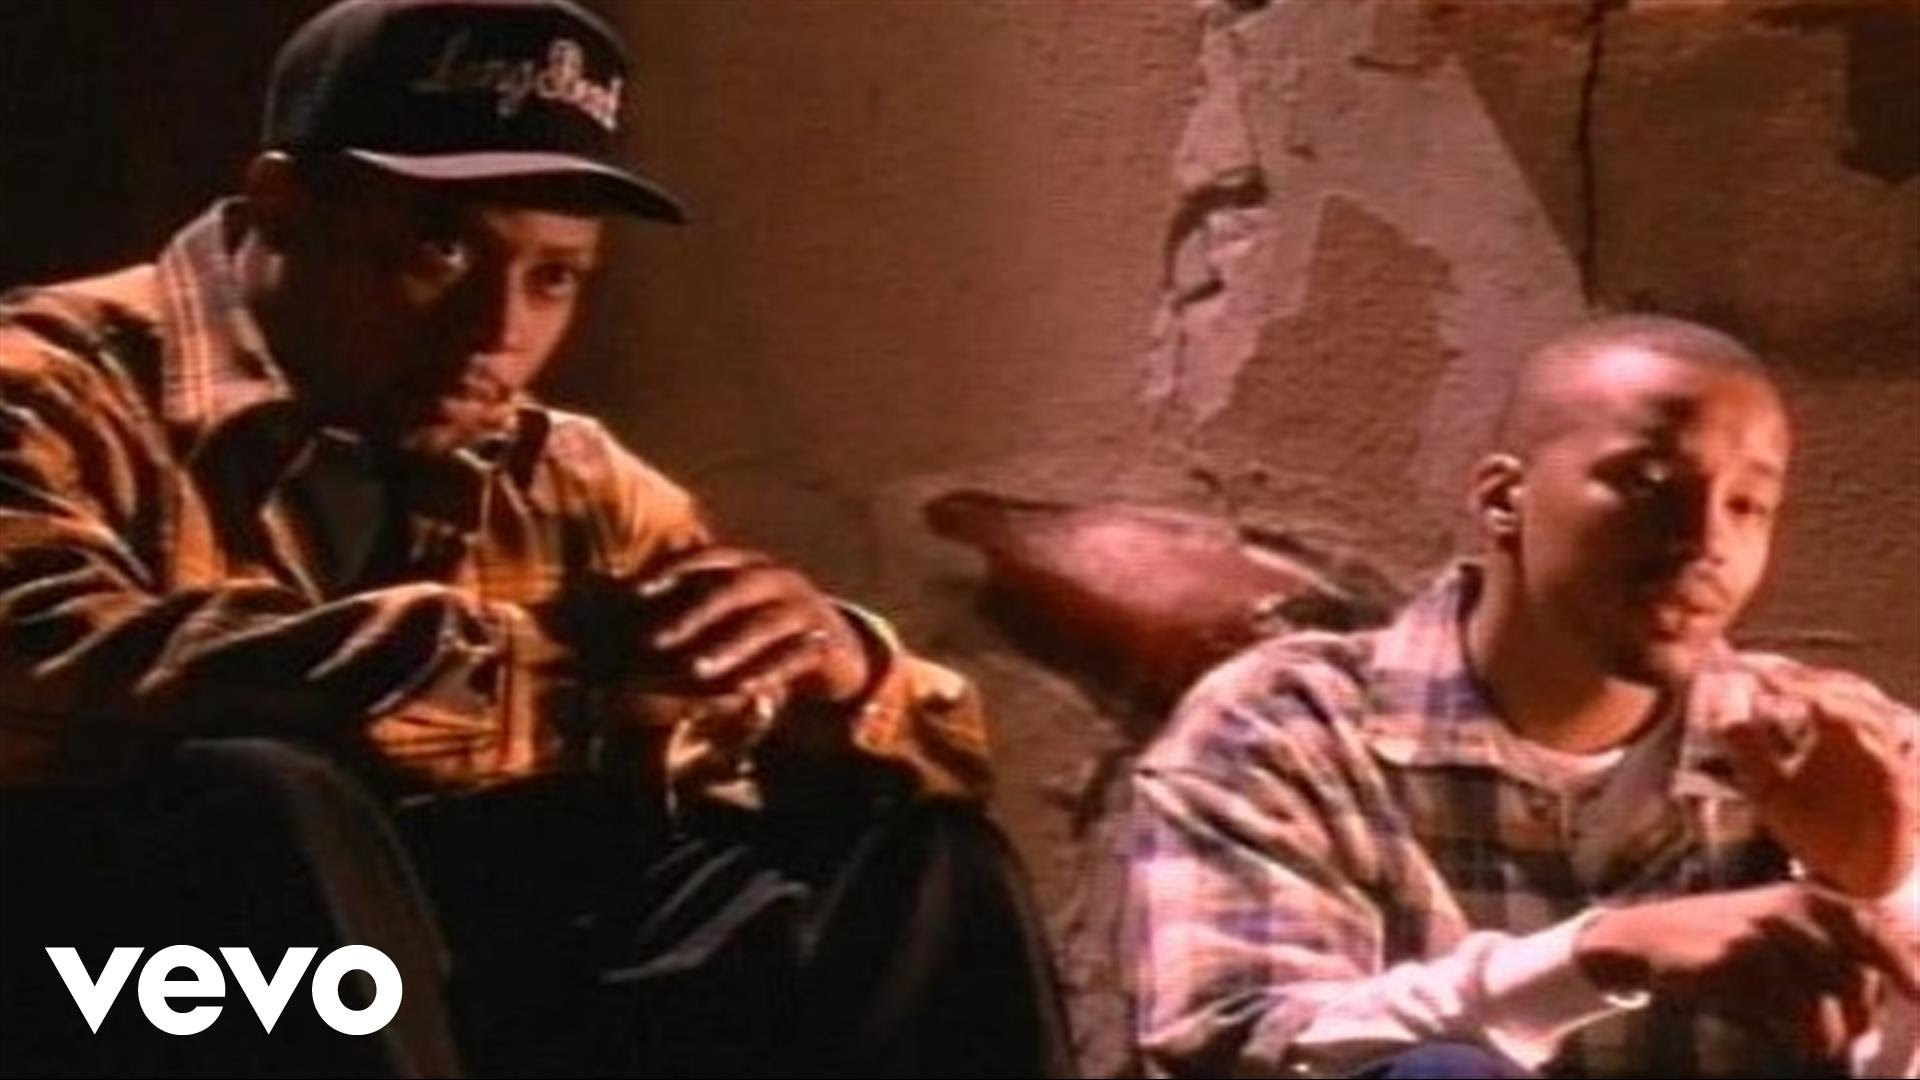 Warren G Ft Nate Dogg – Regulate